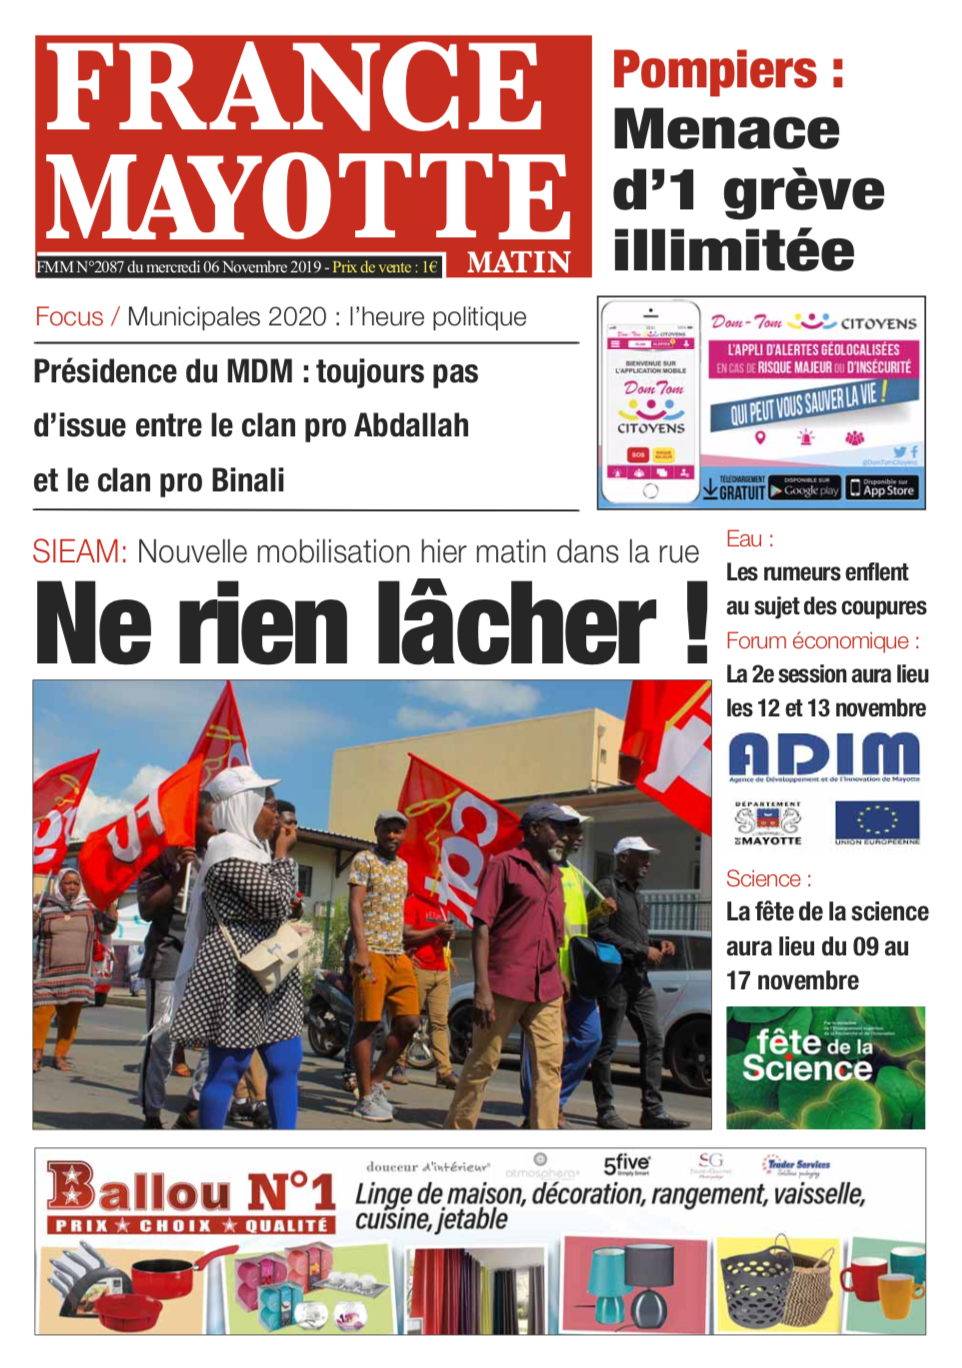 France Mayotte Mercredi 6 novembre 2019